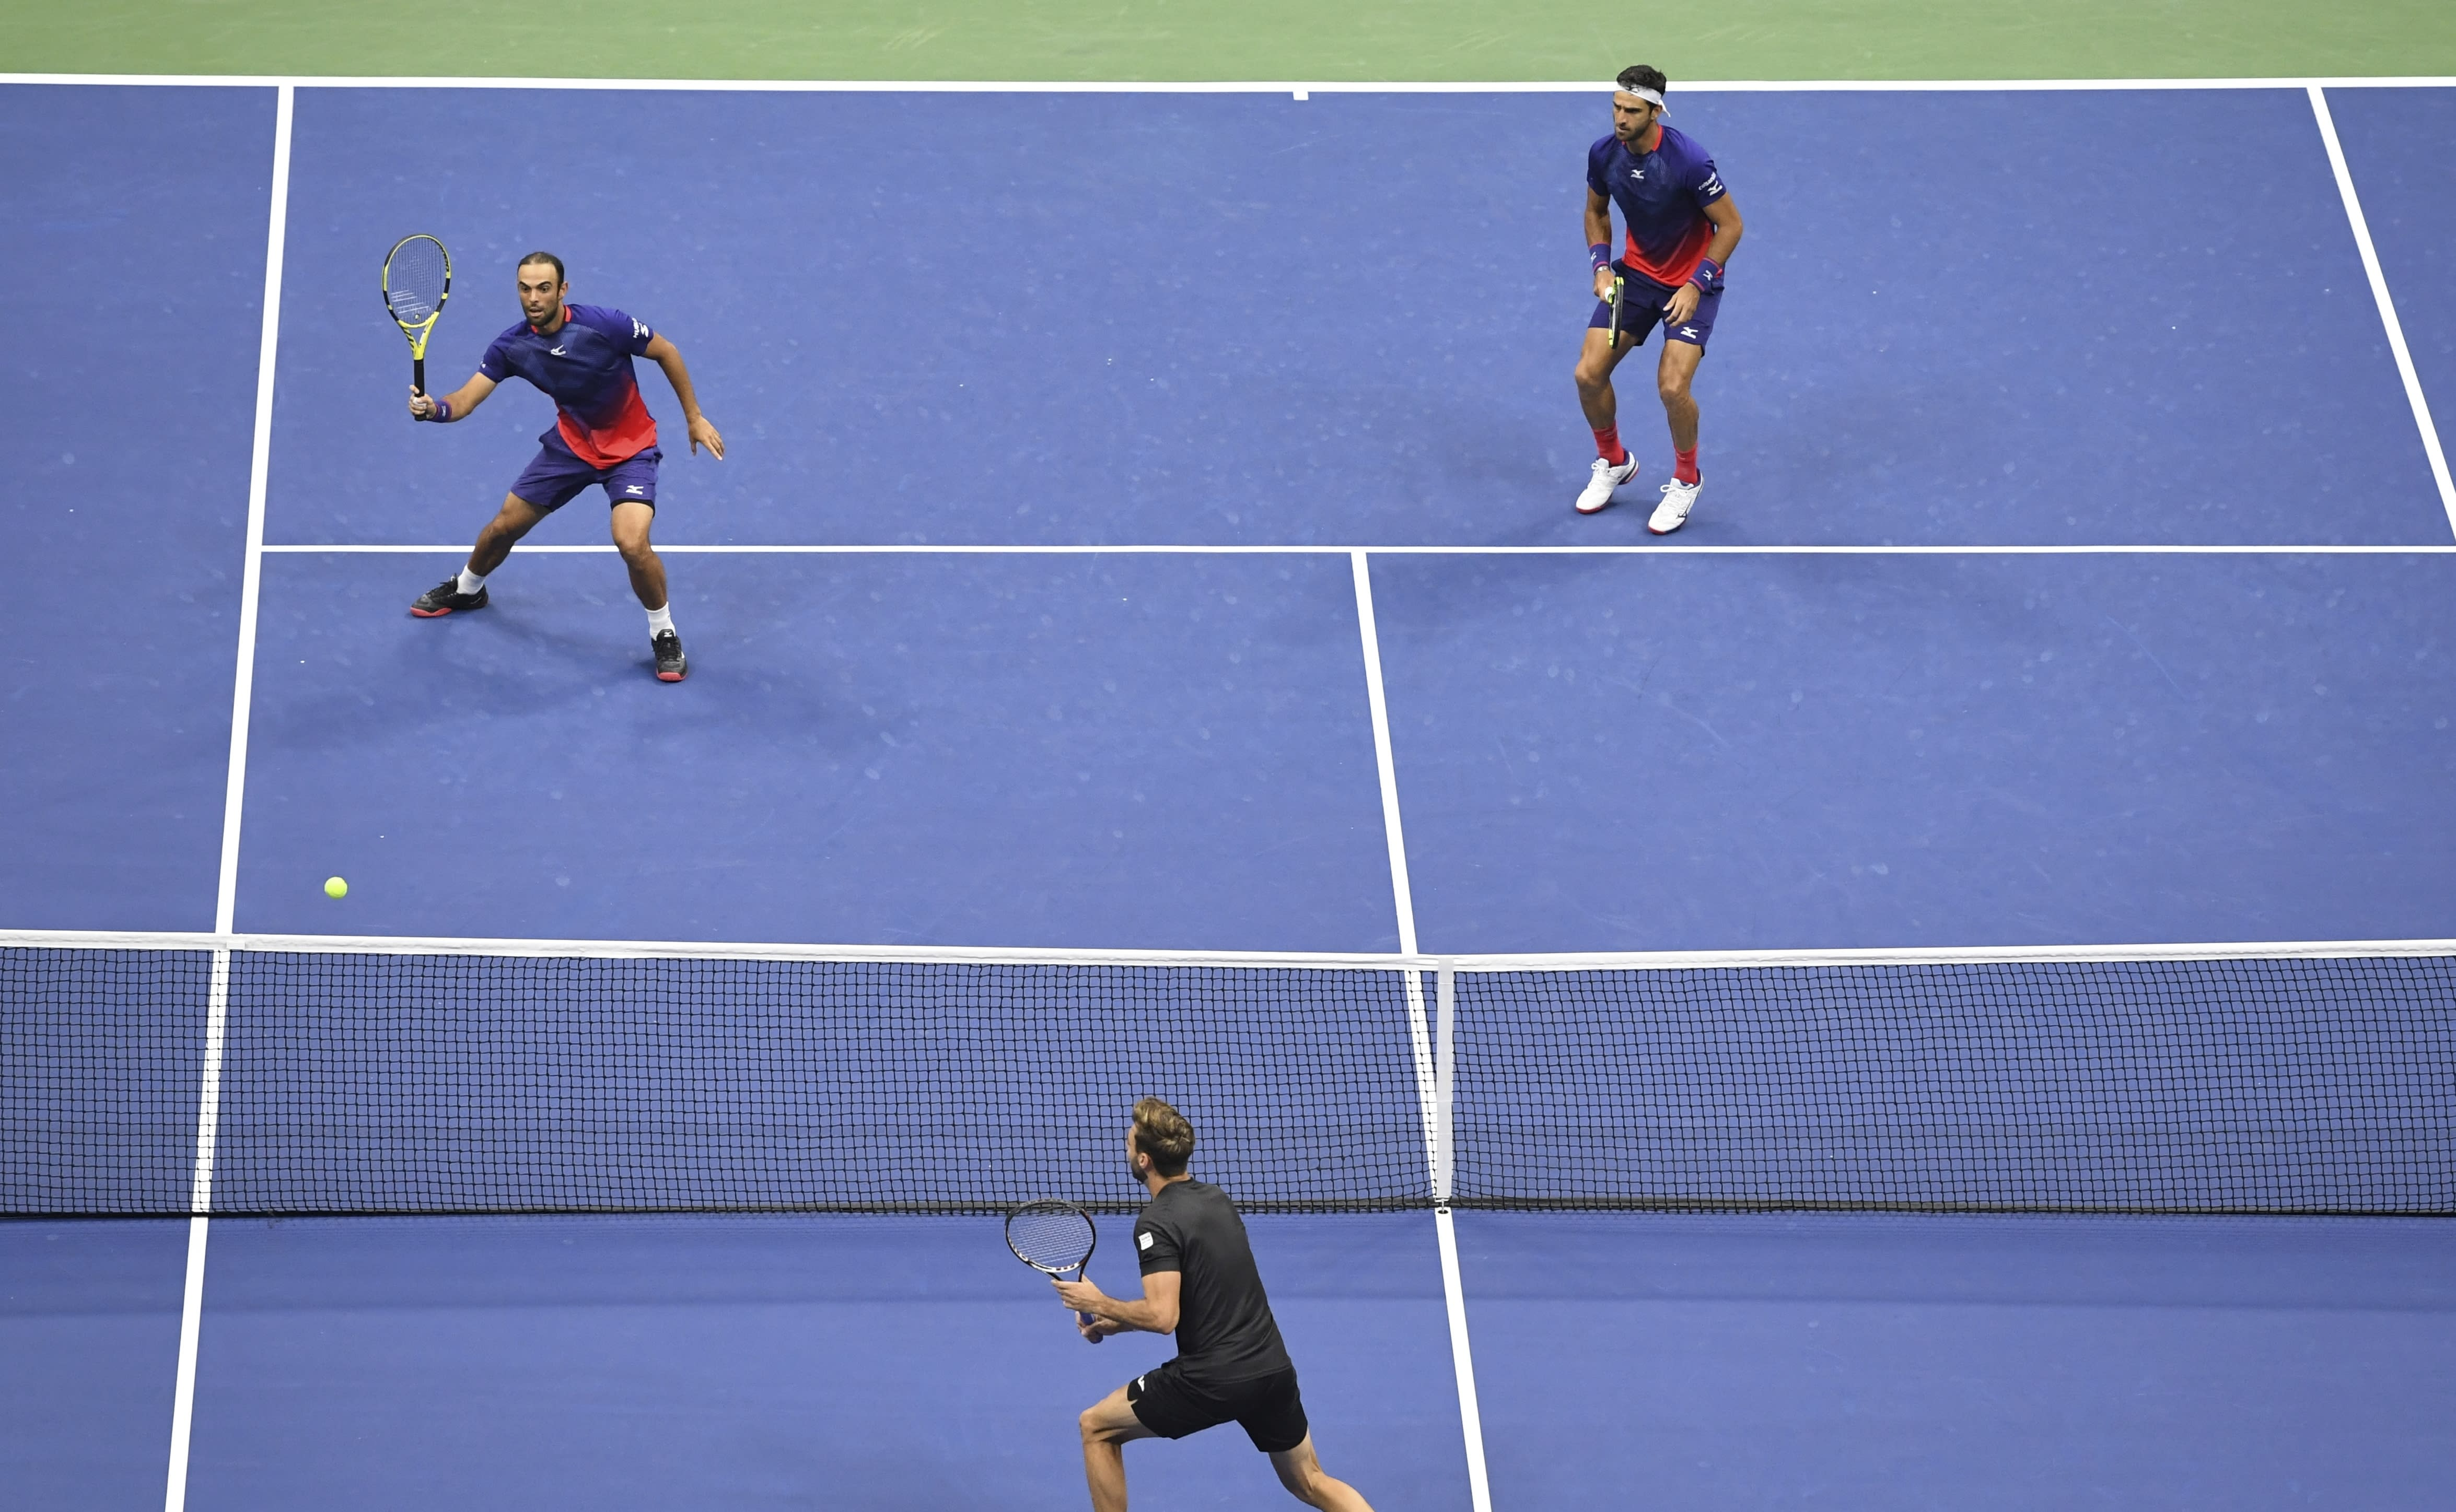 Juan Sebastian Cabal, top left, of Colombia returns a shot to Horacio Zeballos and Marcel Granollers, of Spain, as doubles partner Robert Farah, of Colombia, looks on during the doubles final of the U.S. Open tennis championships Friday, Sept. 6, 2019, in New York. (AP Photo/Sarah Stier)